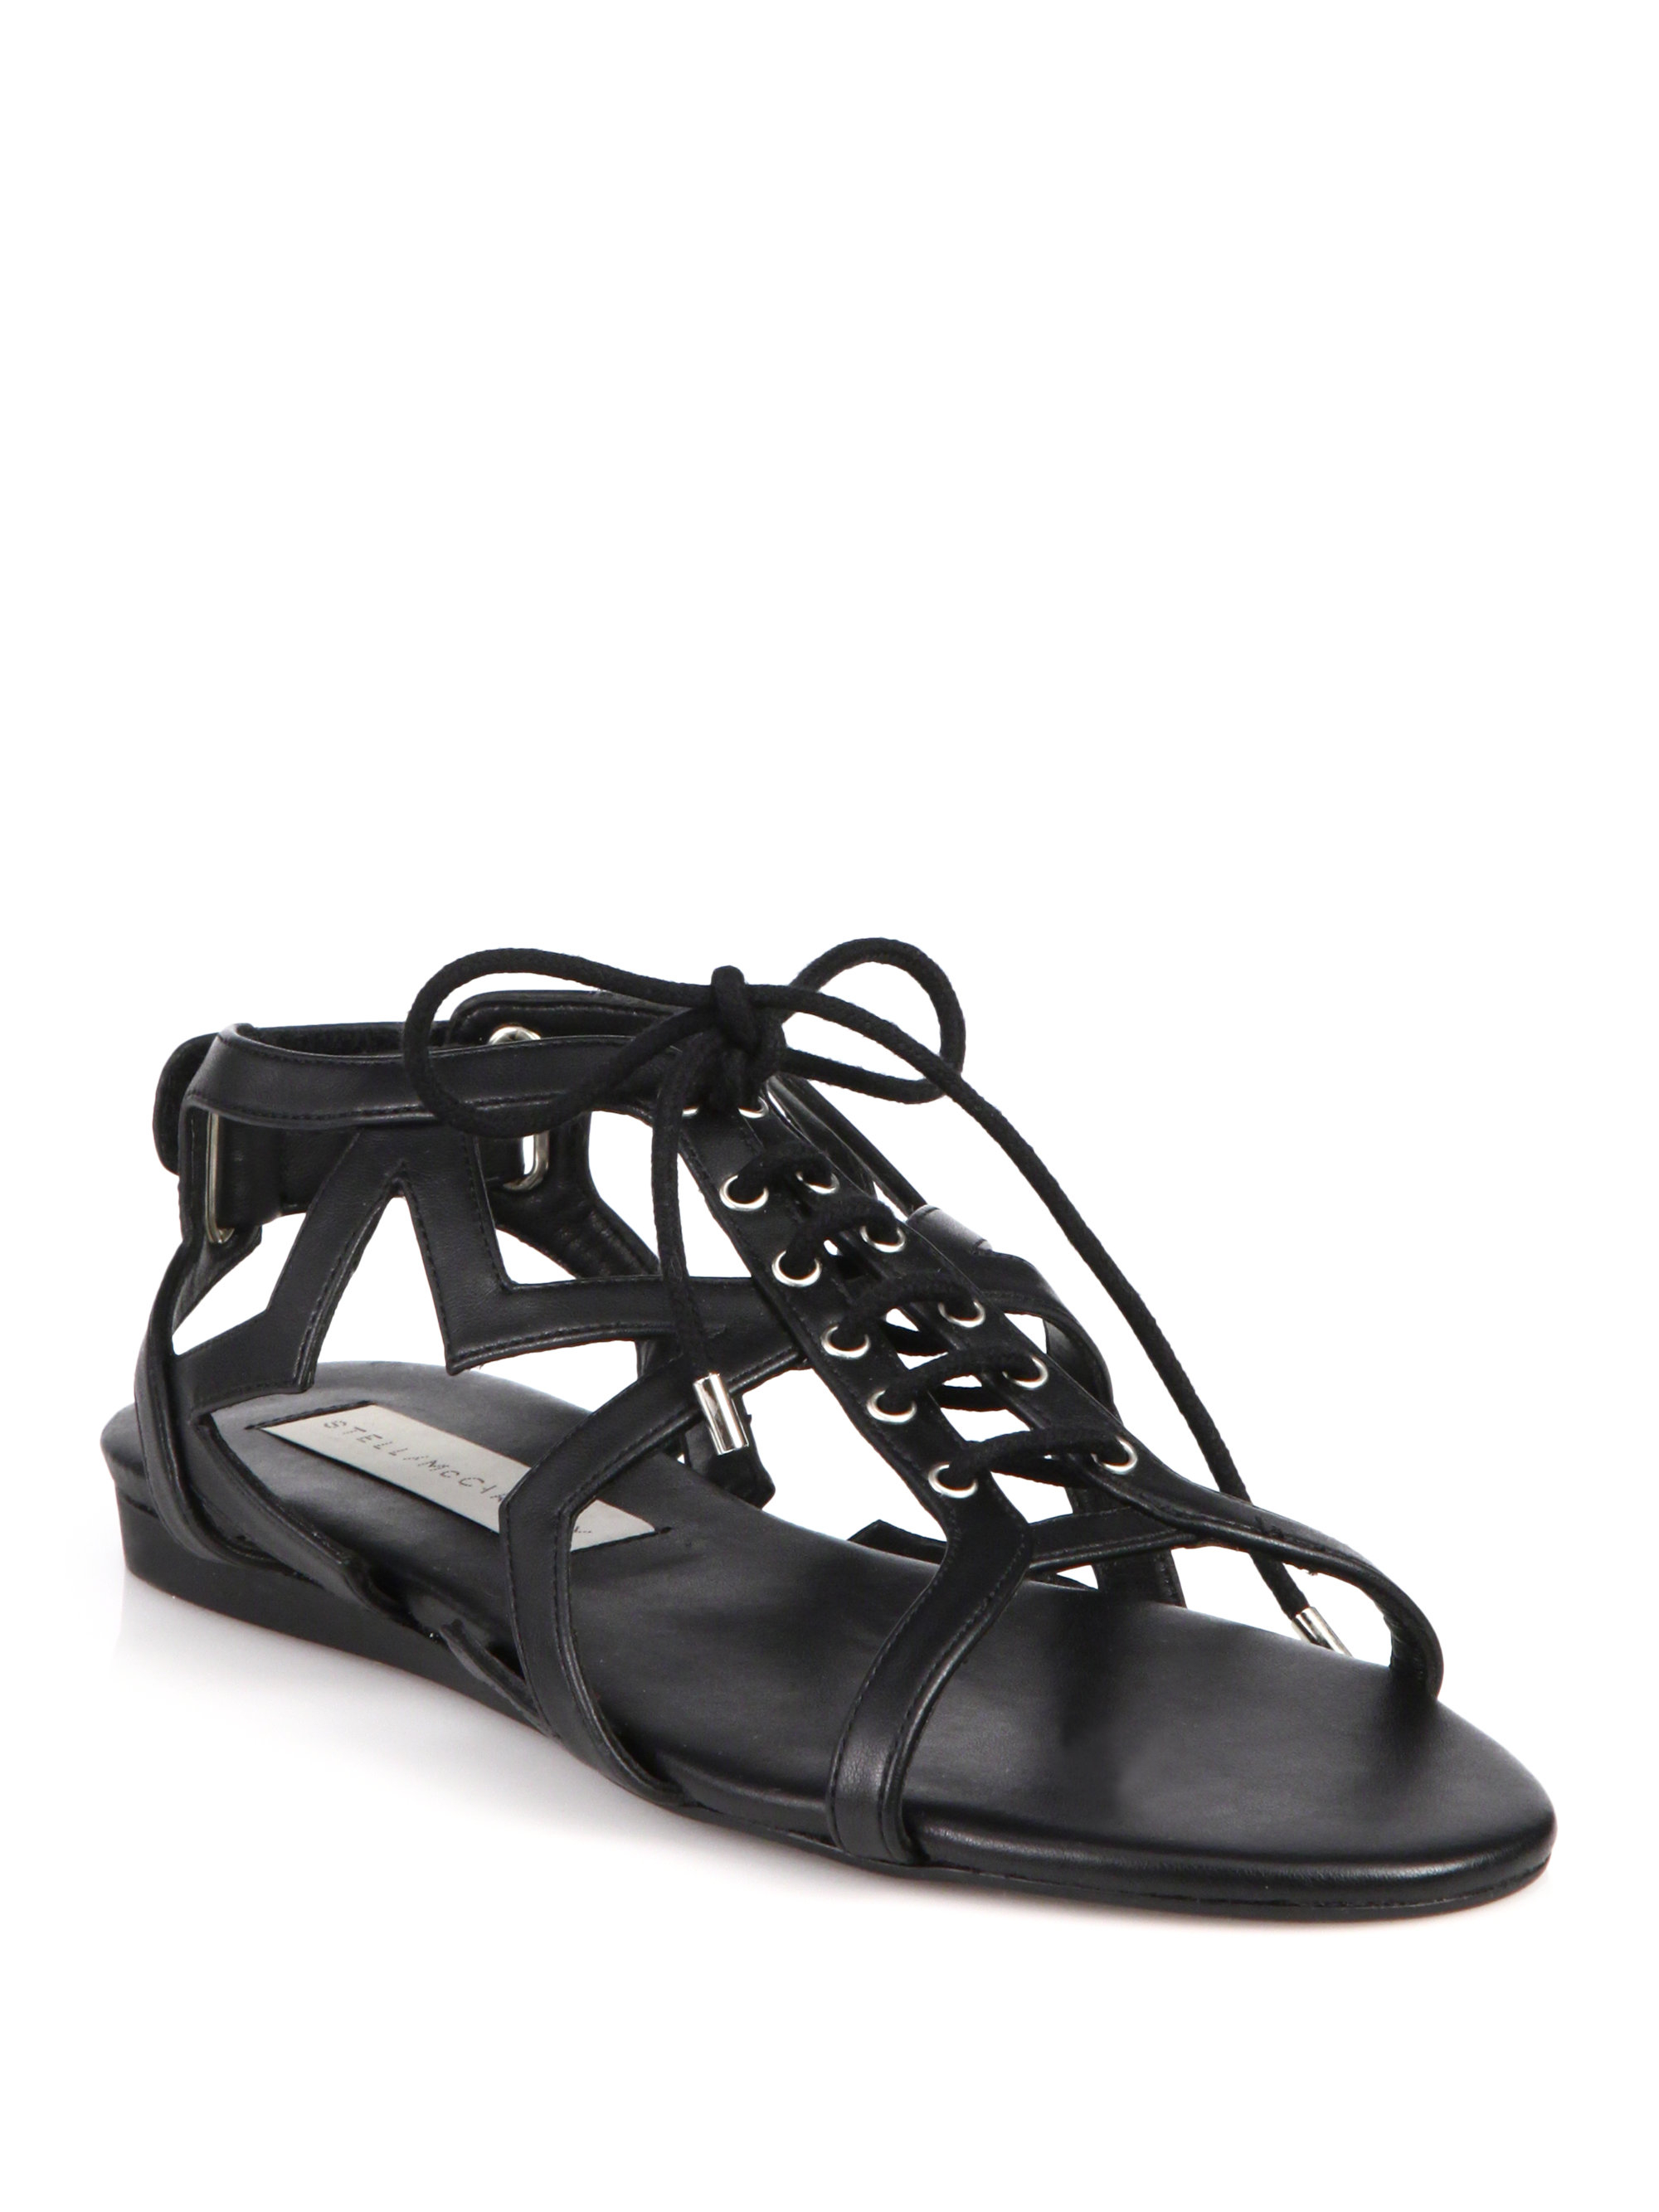 discount many kinds of Stella McCartney Lace-Up Sandals on hot sale amazon footaction free shipping with mastercard QGIvG4Gc